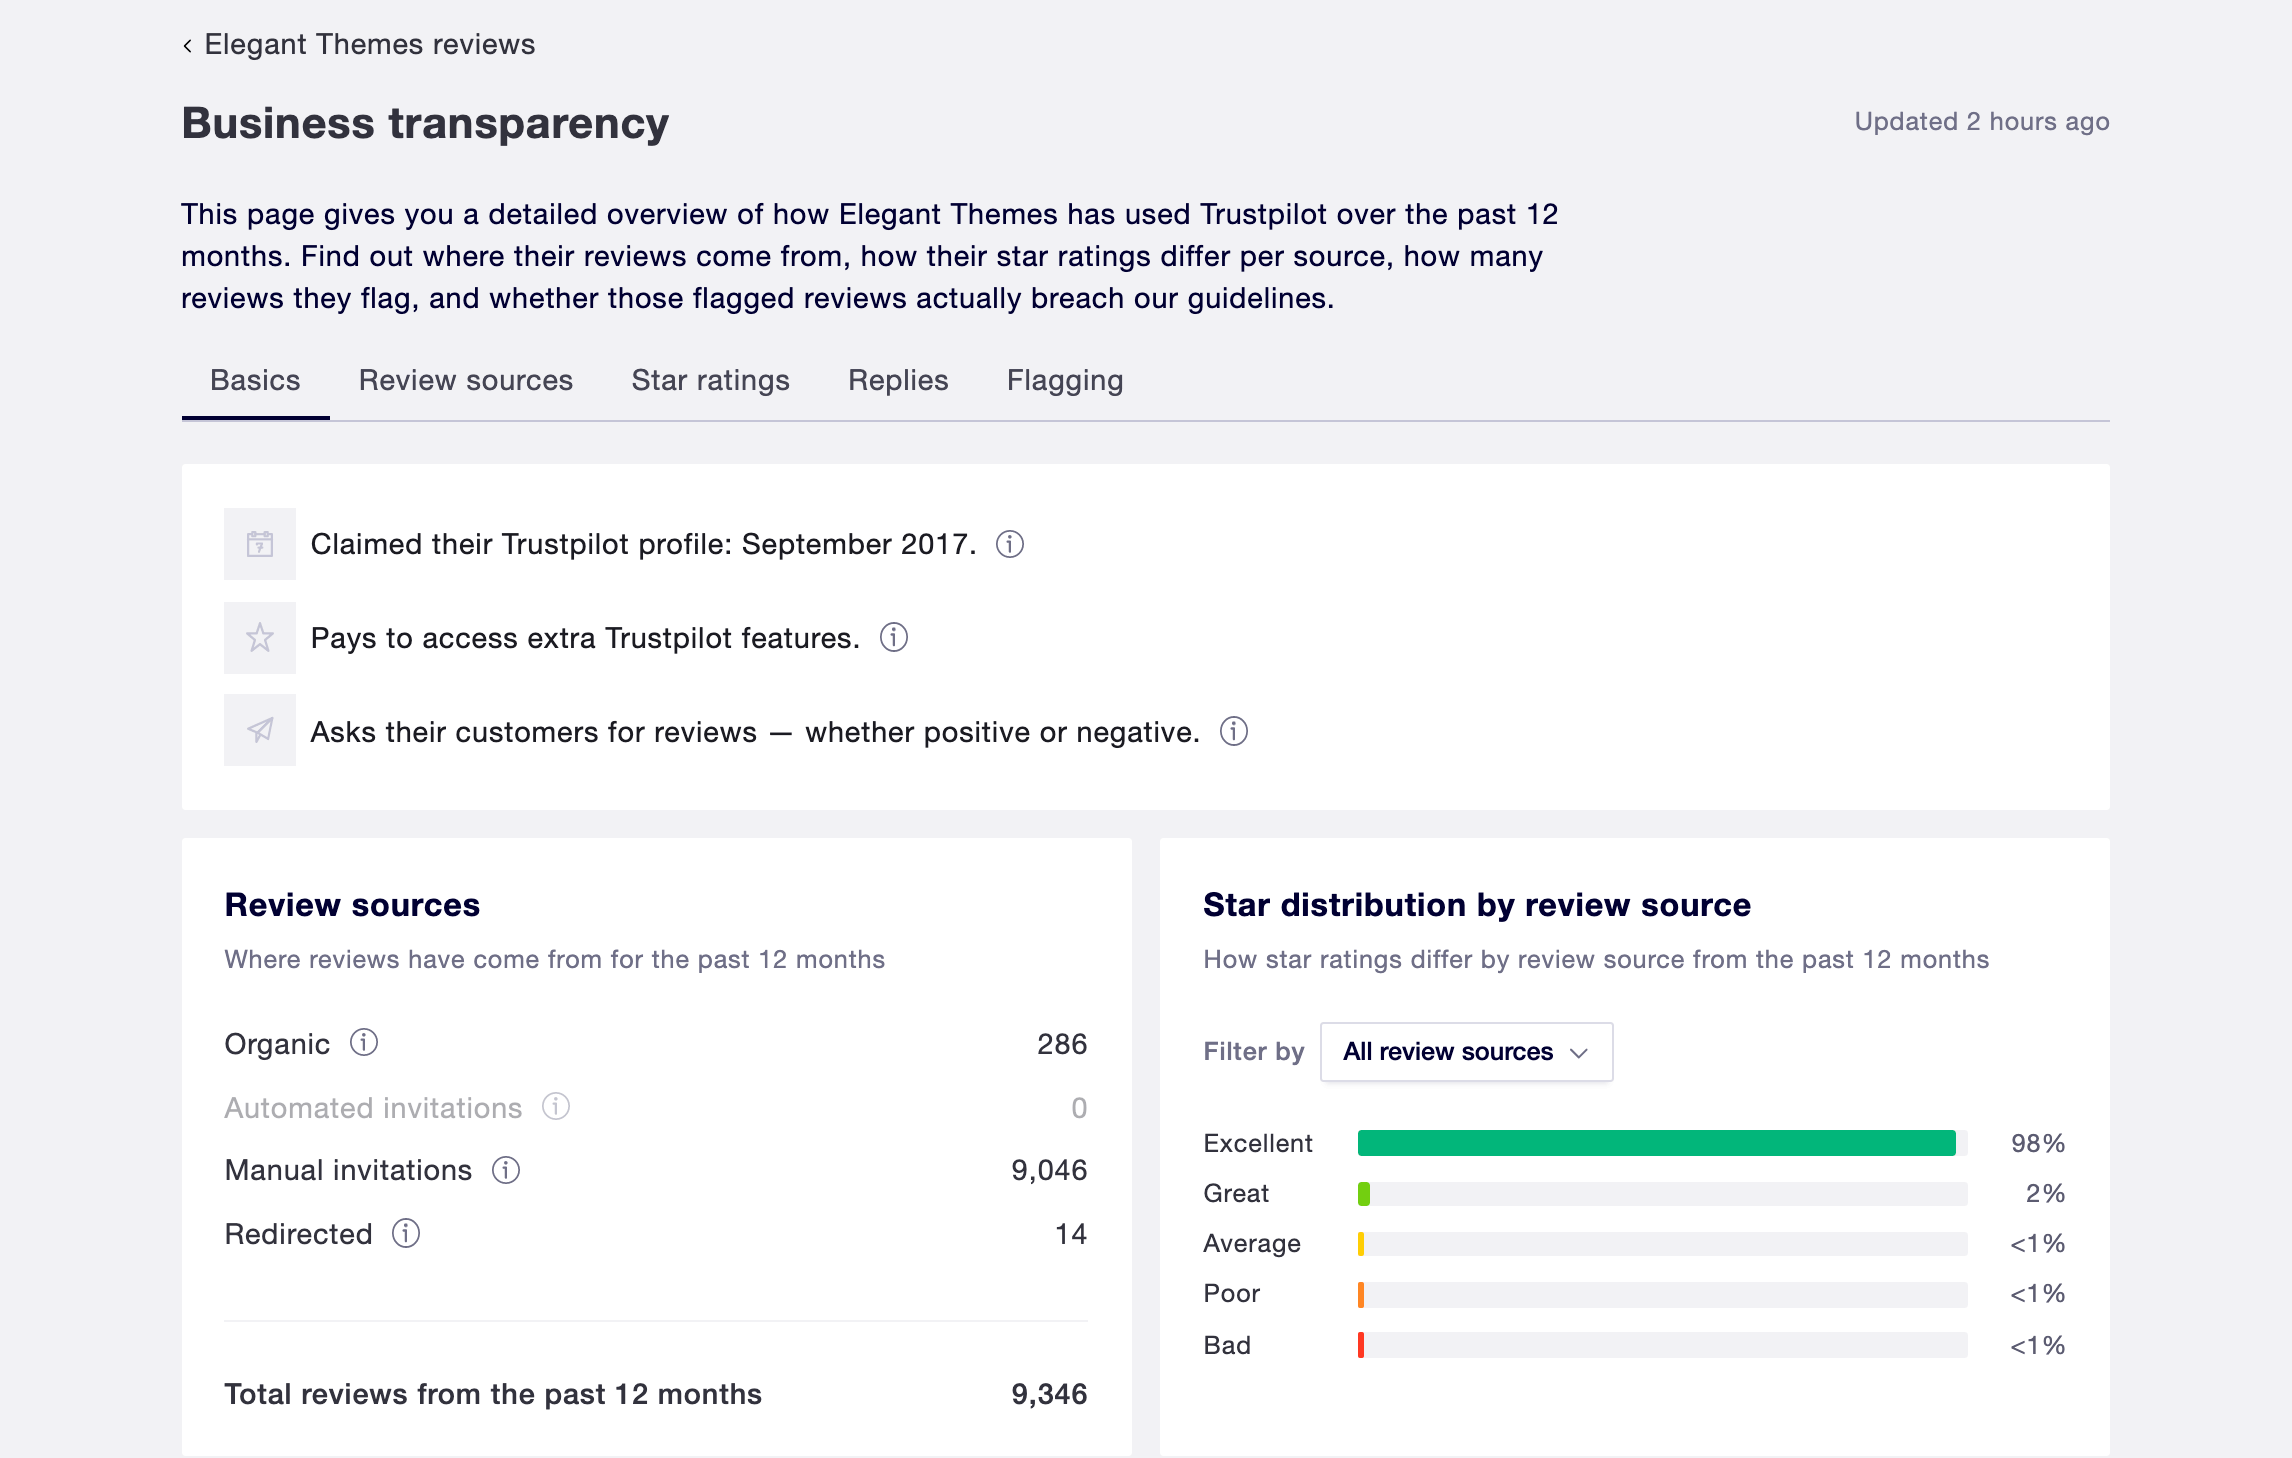 The Detailed Overview screen on Trustpilot.